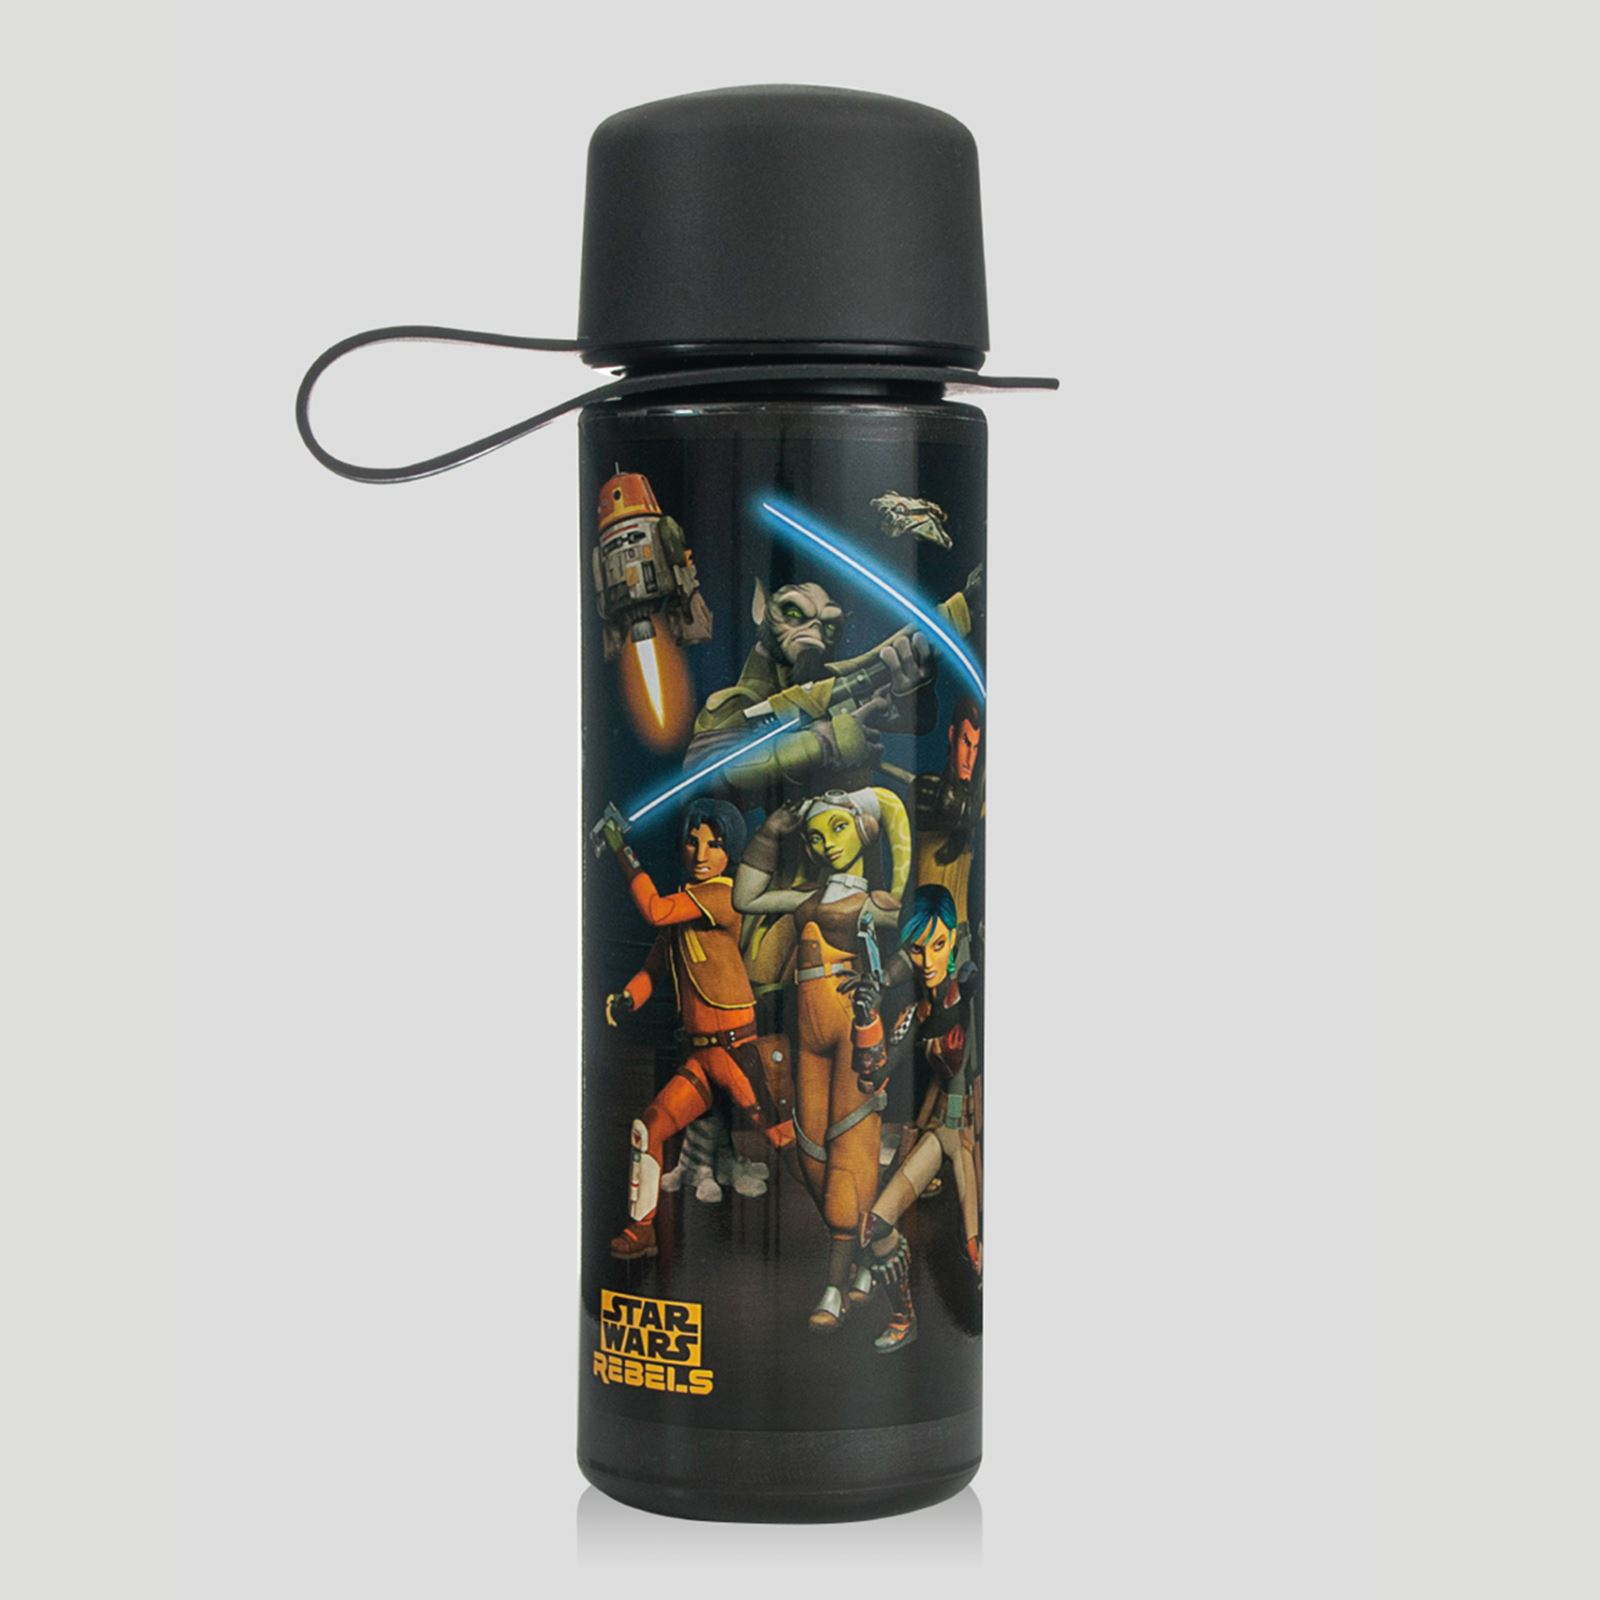 star wars rebels lunchbox und trinkflasche set neu kids schule ebay. Black Bedroom Furniture Sets. Home Design Ideas